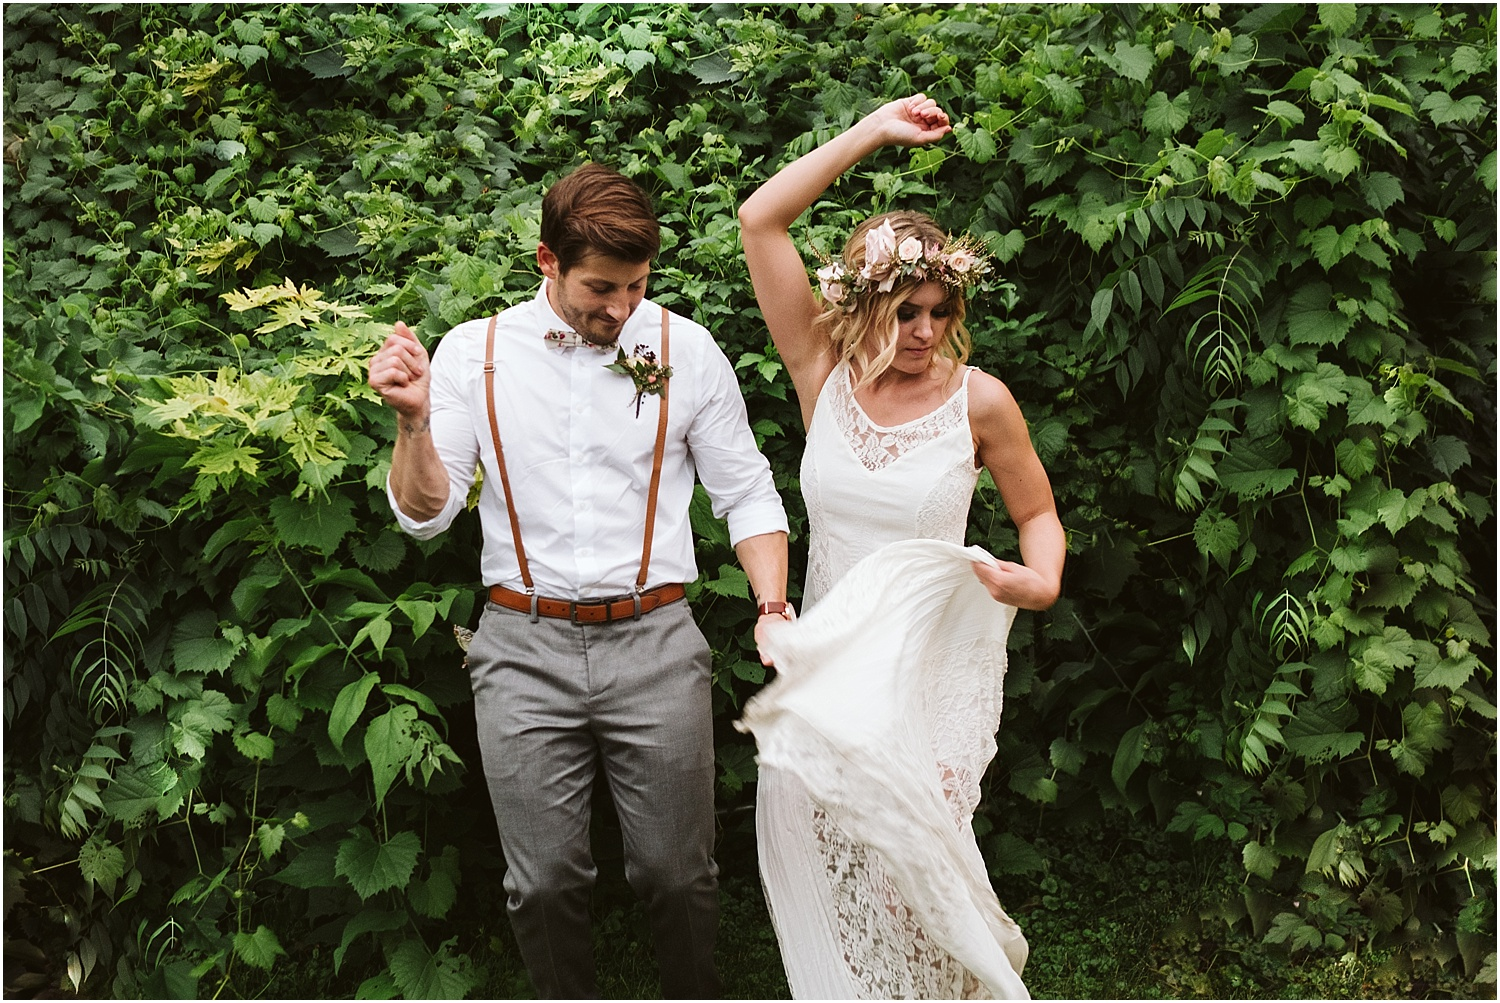 j-b-joyful-happy-smile-dancing-backyard-diy-boho-chic-wedding_0061.jpg